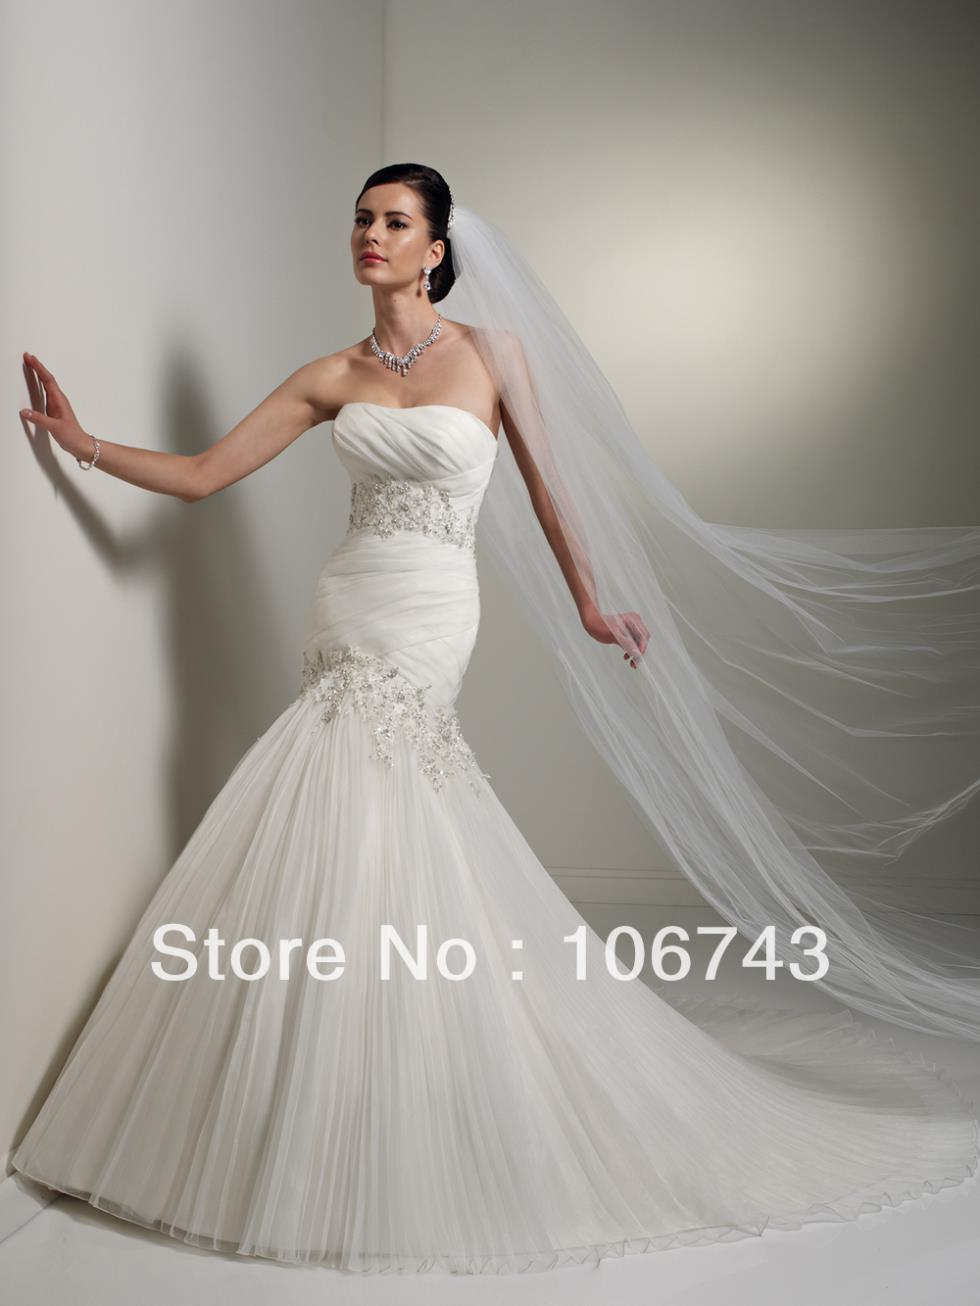 Free Shipping 2017 New Style Best Seller Sexy Bride Wear Handmade Custom Sizes Crystal Lace Up Plus Size Mermaid Wedding Dress